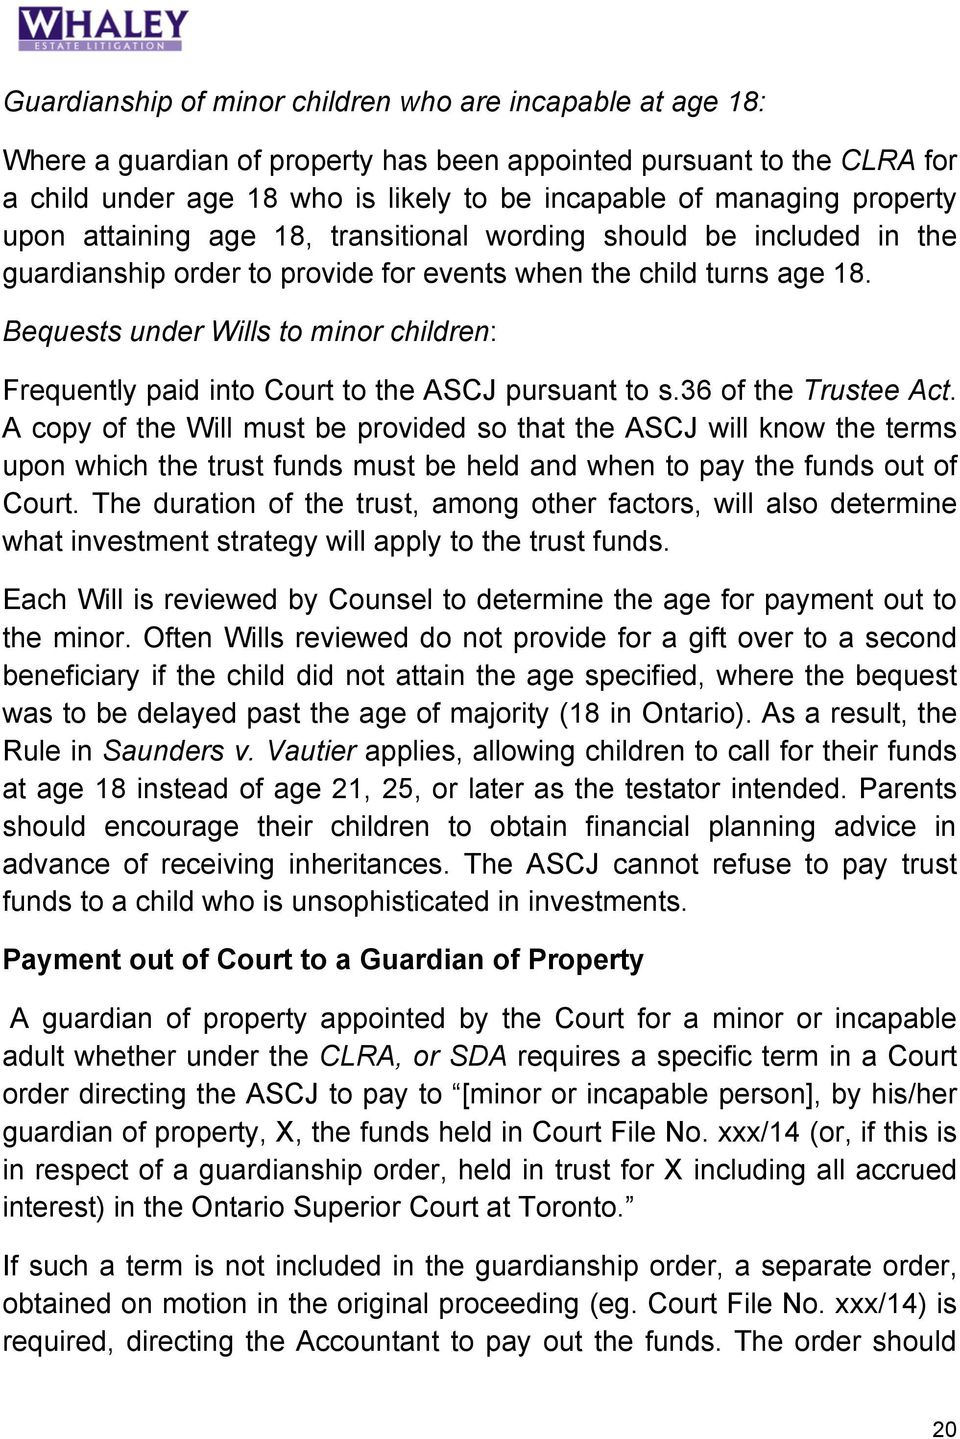 Bequests under Wills to minor children: Frequently paid into Court to the ASCJ pursuant to s.36 of the Trustee Act.